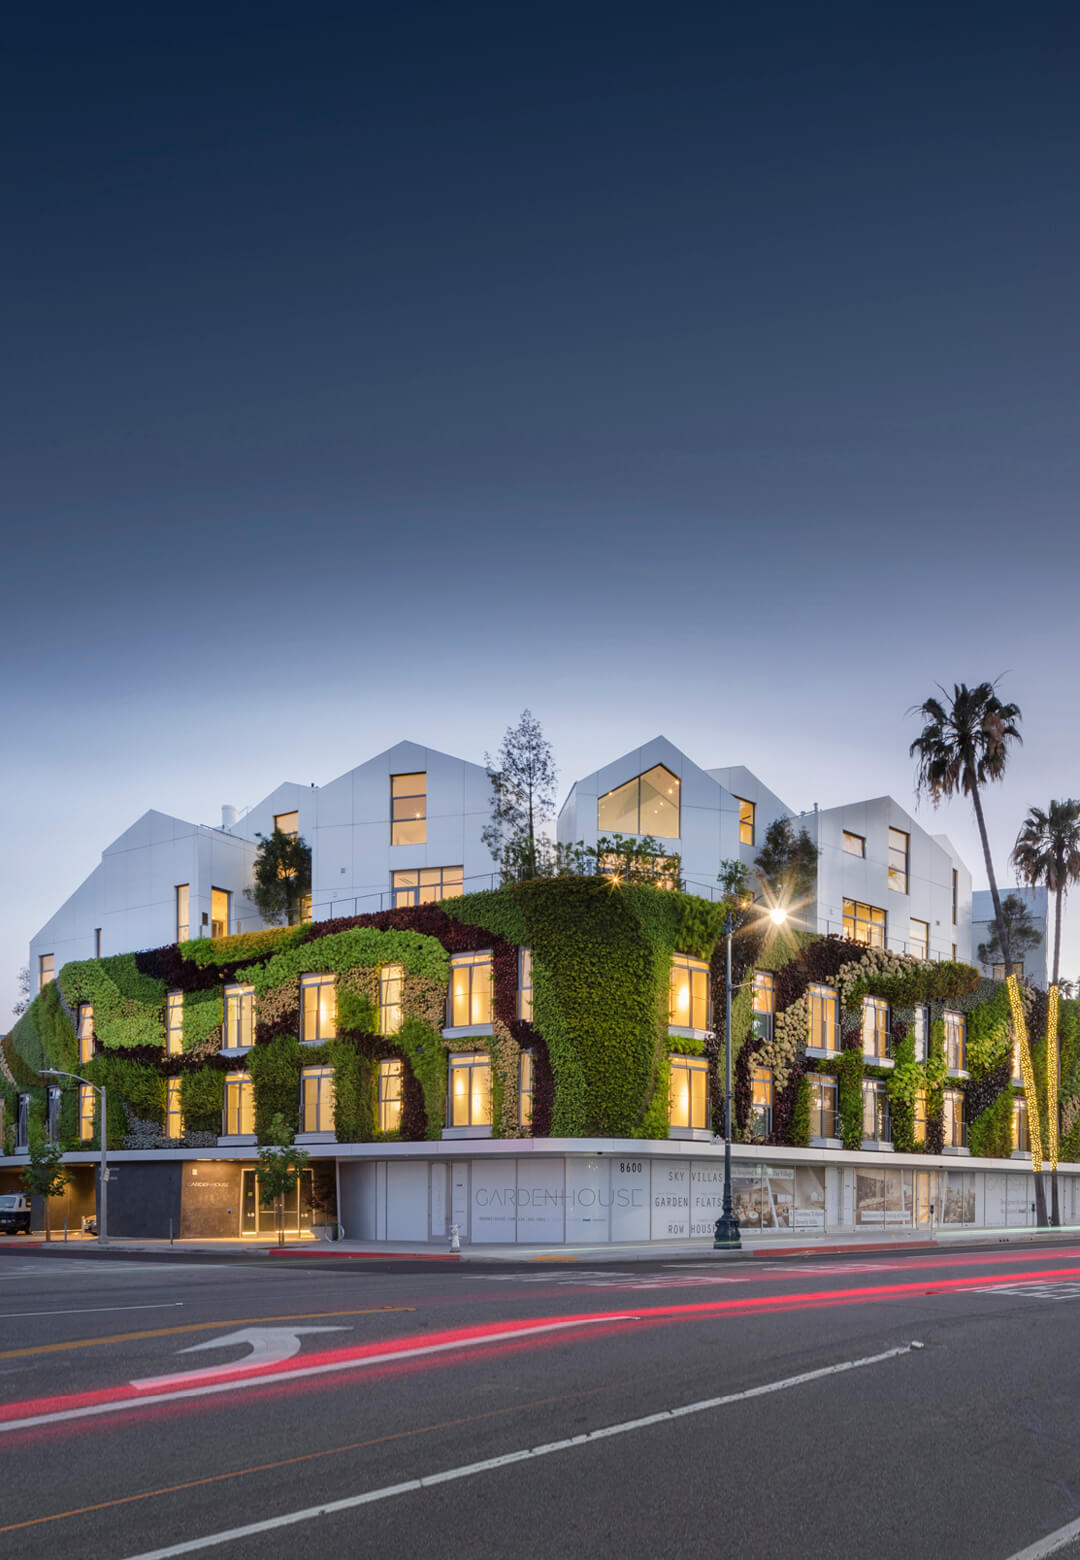 MAD Architects complete Gardenhouse in Beverly Hills, LA   Gardenhouse by MAD Architects   STIRworld